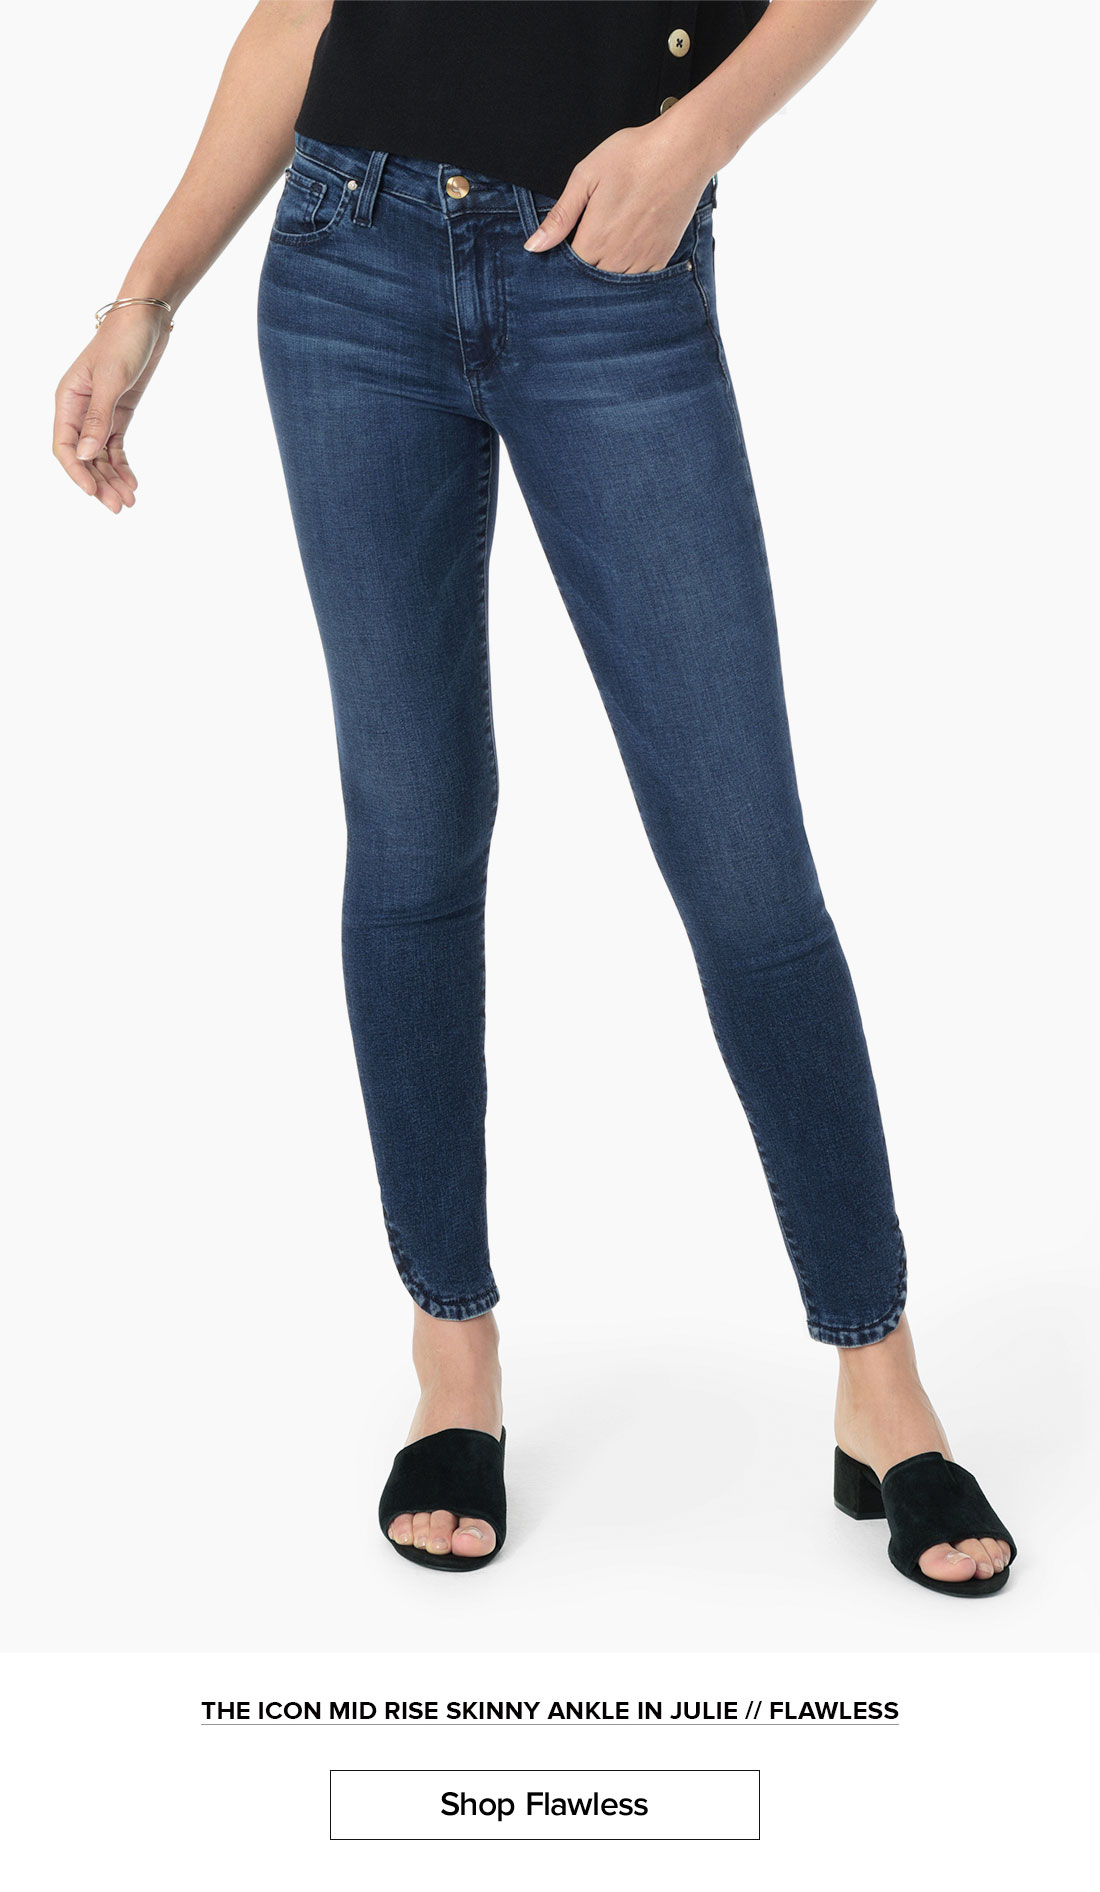 Mid-rise Skinny Ankle // Dolphin Hem // 27 Inseam // Flawless // Julie